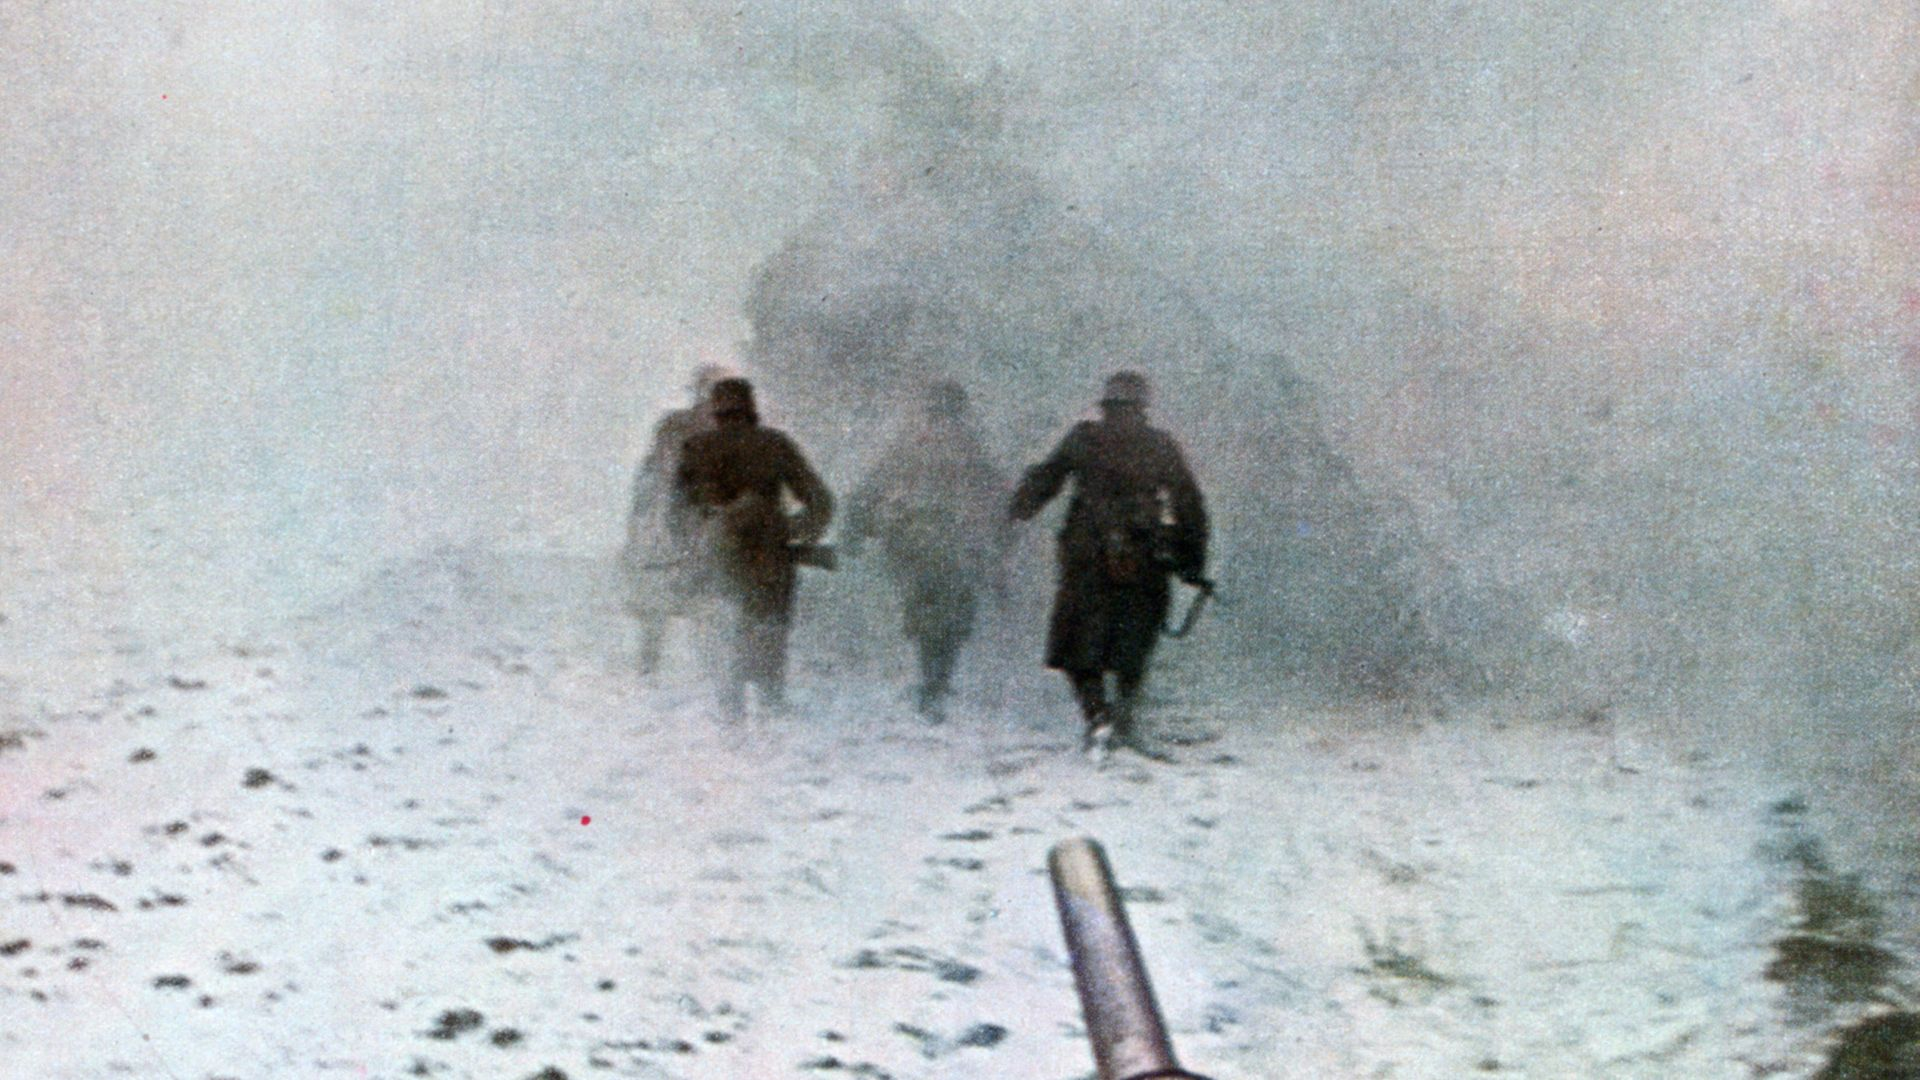 German soldiers advance in wintry conditions during the Battle of Moscow. The image is a Signal, a magazine published by the Wehrmacht from 1940 to 1945 - Credit: Print Collector/Getty Images